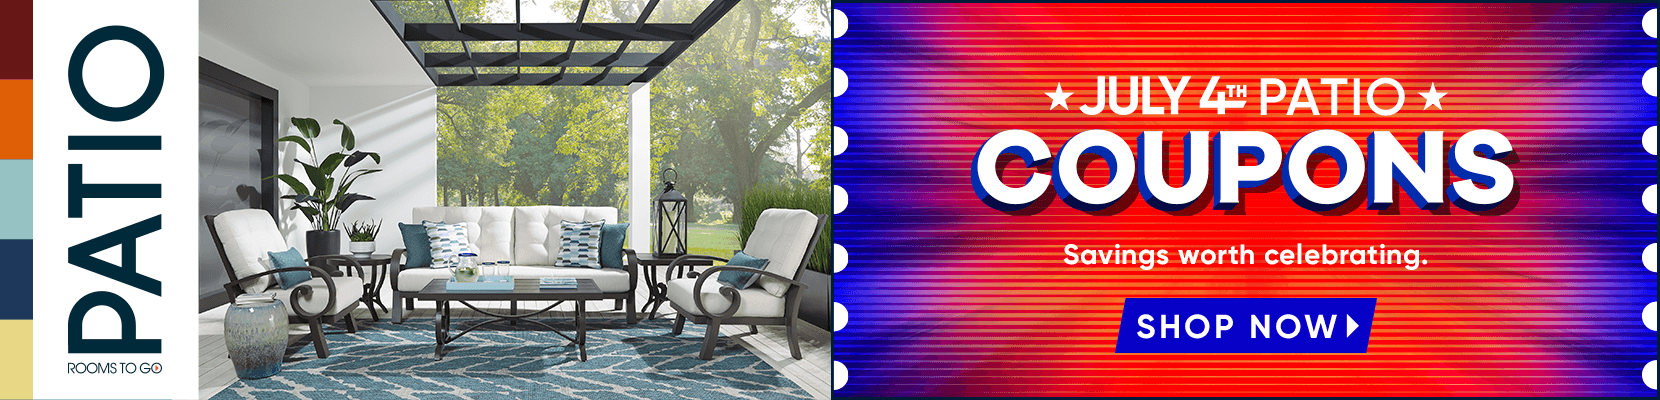 july 4th patio coupons. savings worth celebrating. shop now